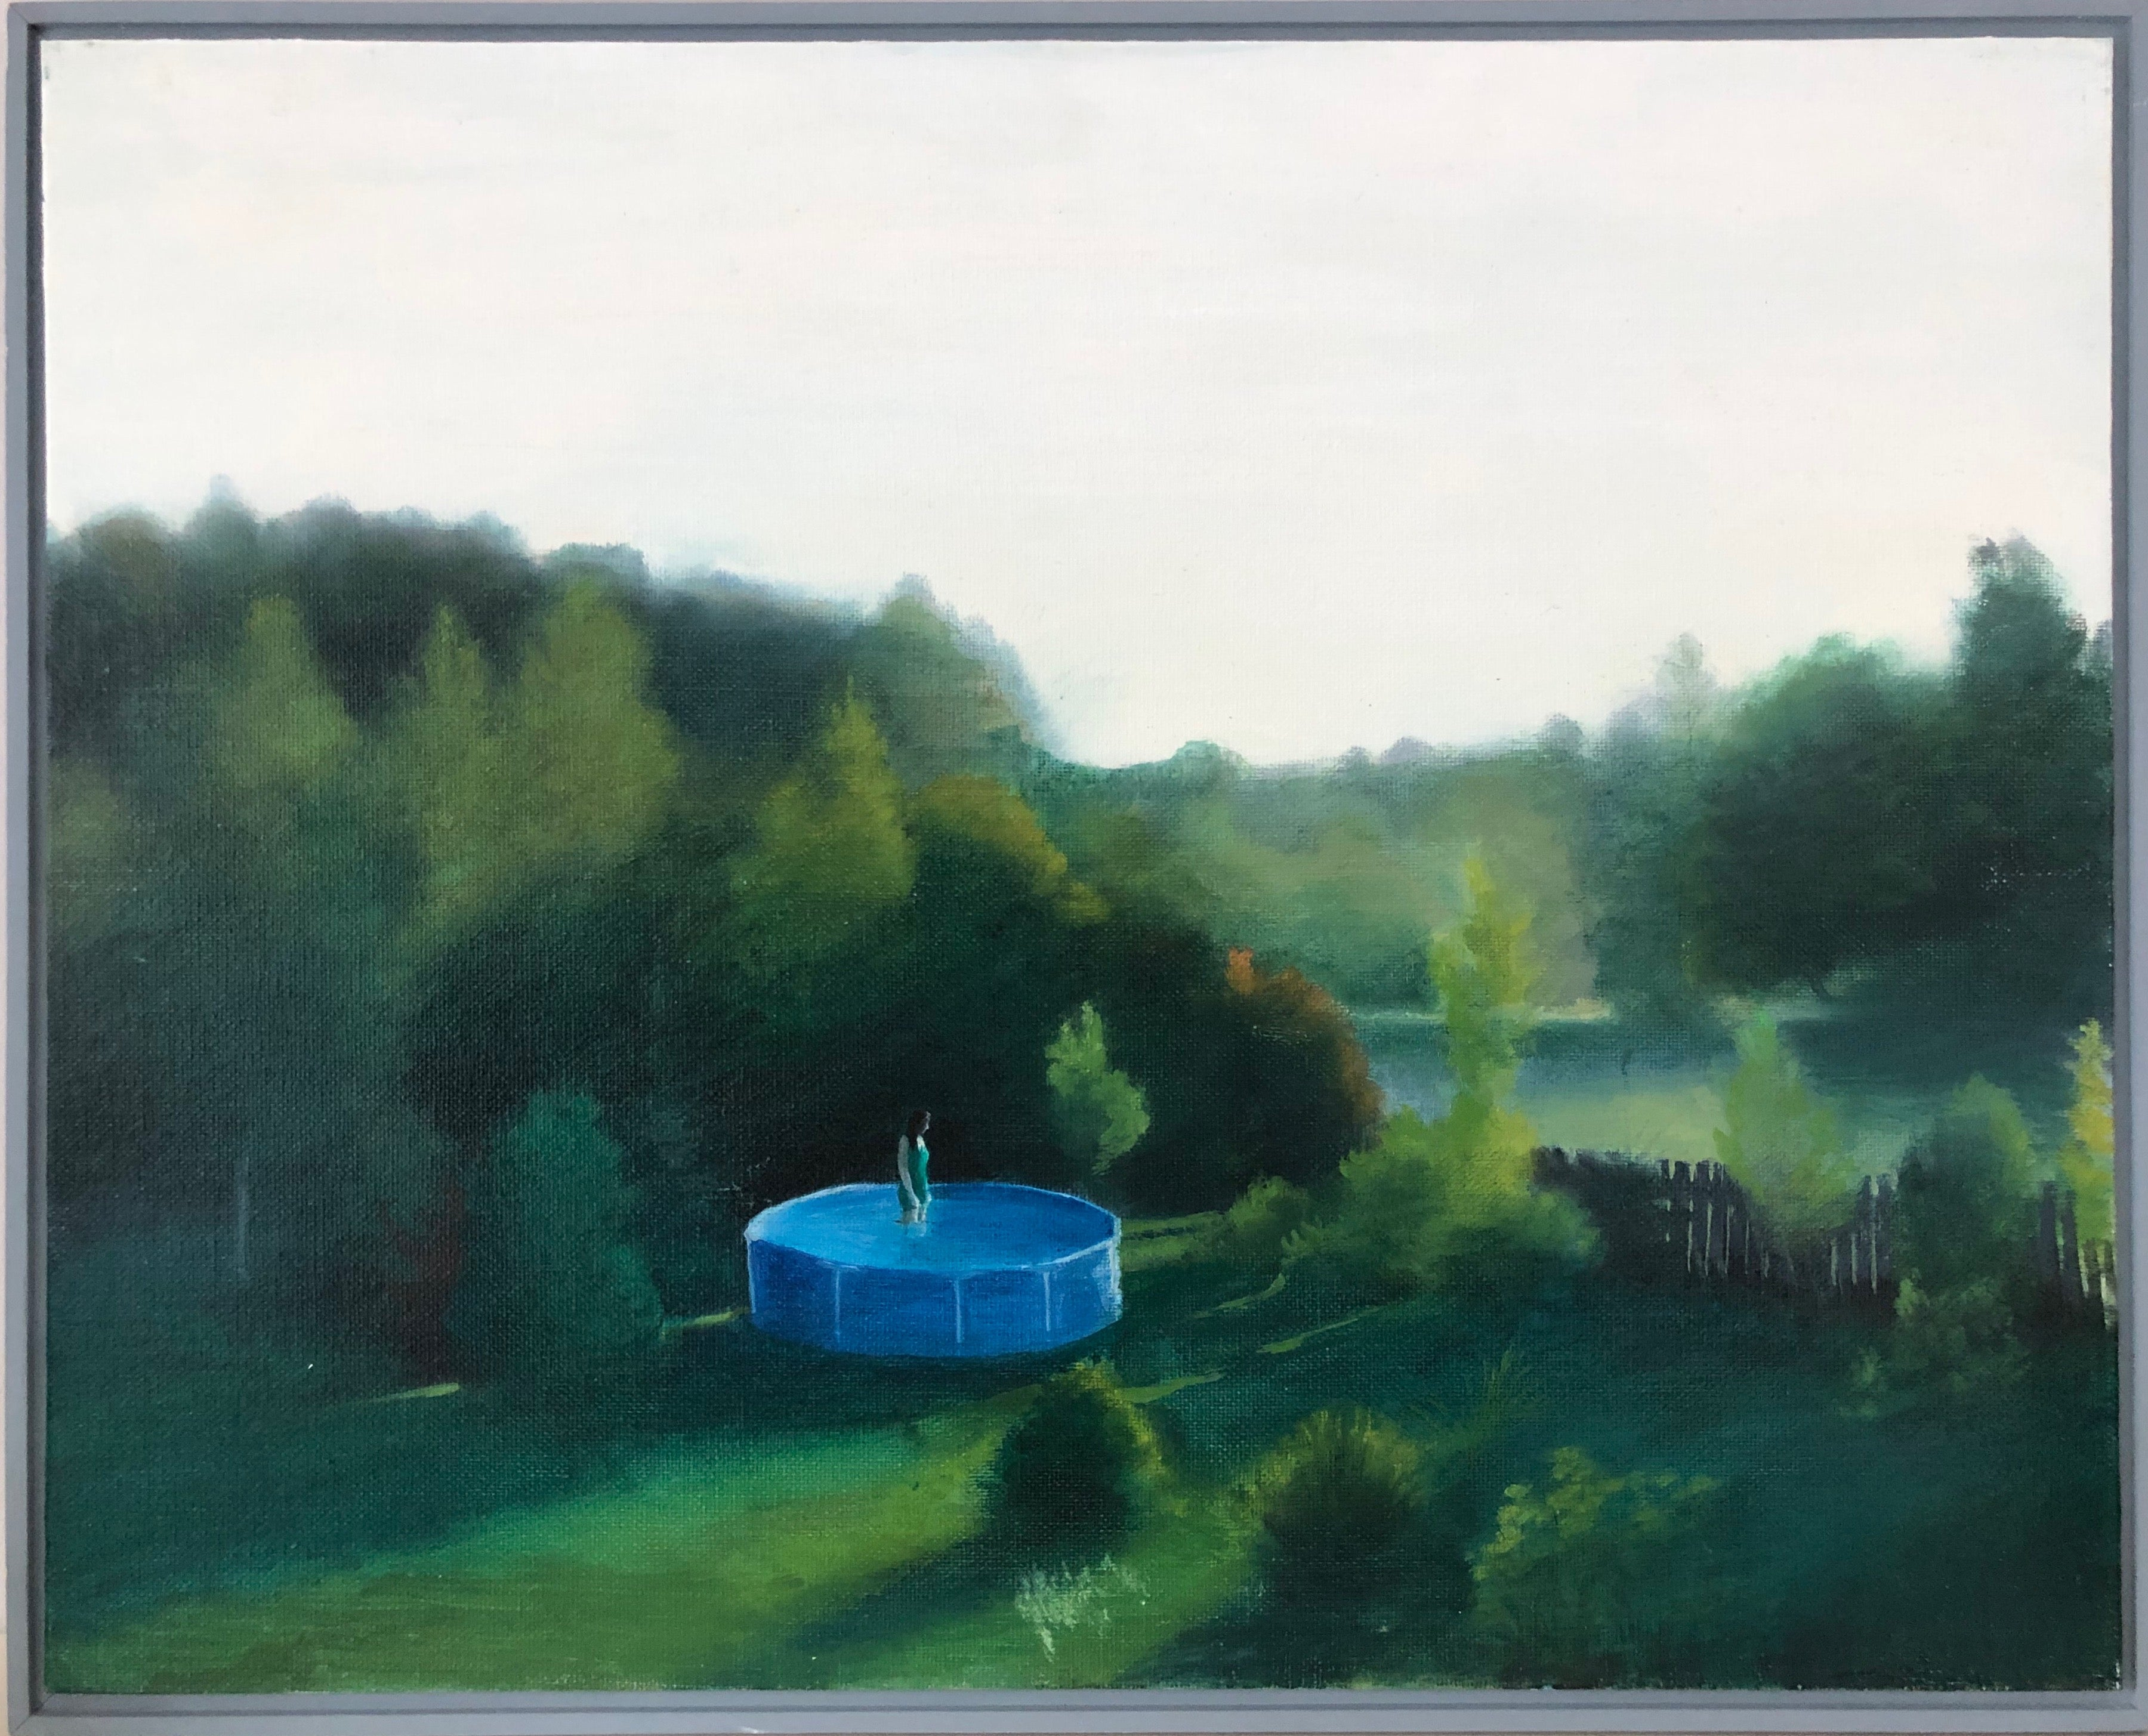 Bathing-landscape, canvas on cardboard, oil, framed, made in green, blue color